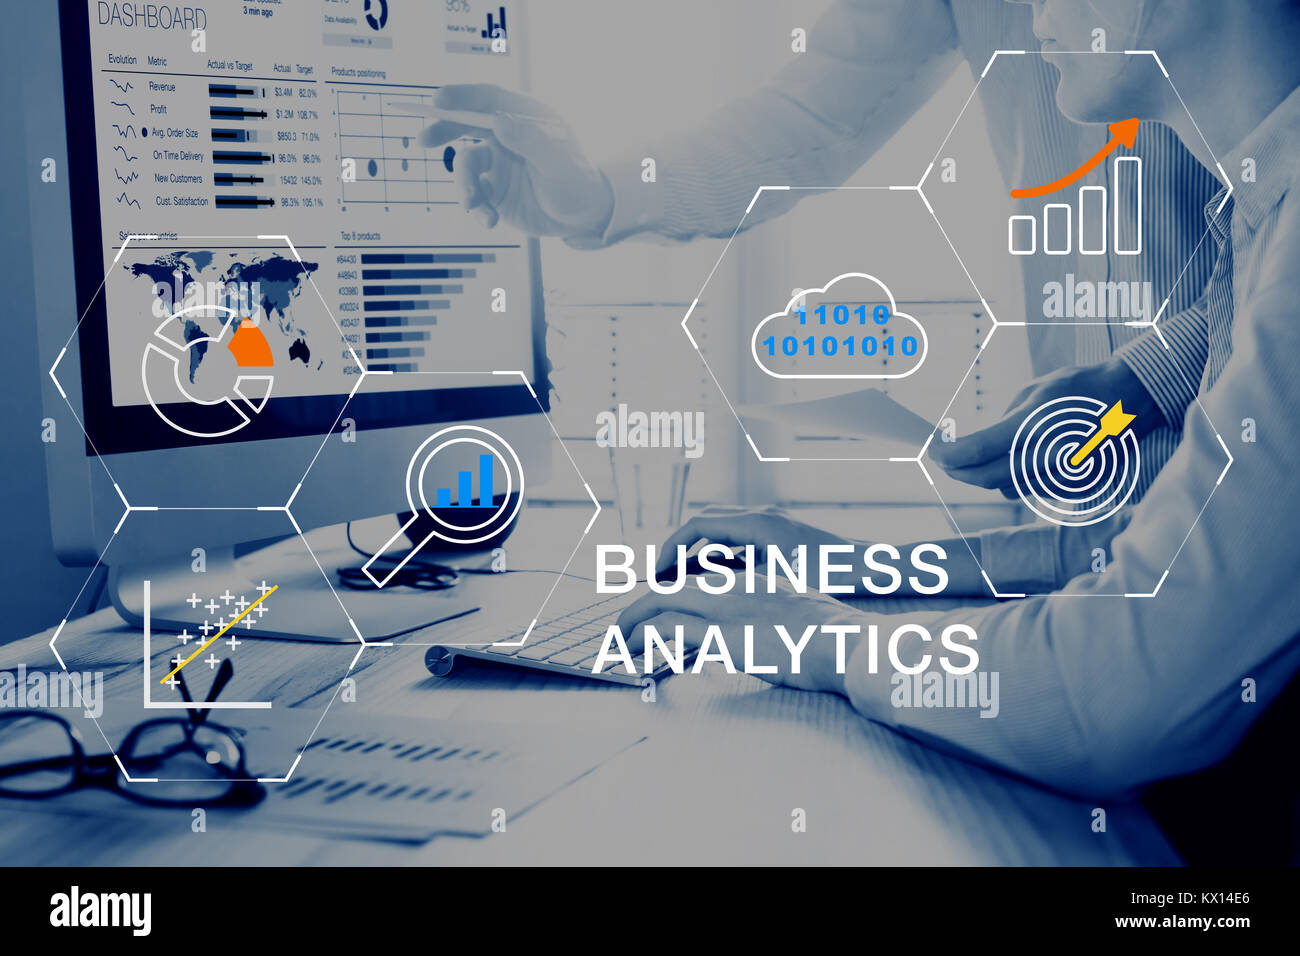 Business Analytics (BA) technology using big data, cloud computing and statistical model prediction to provide insights - Stock Image